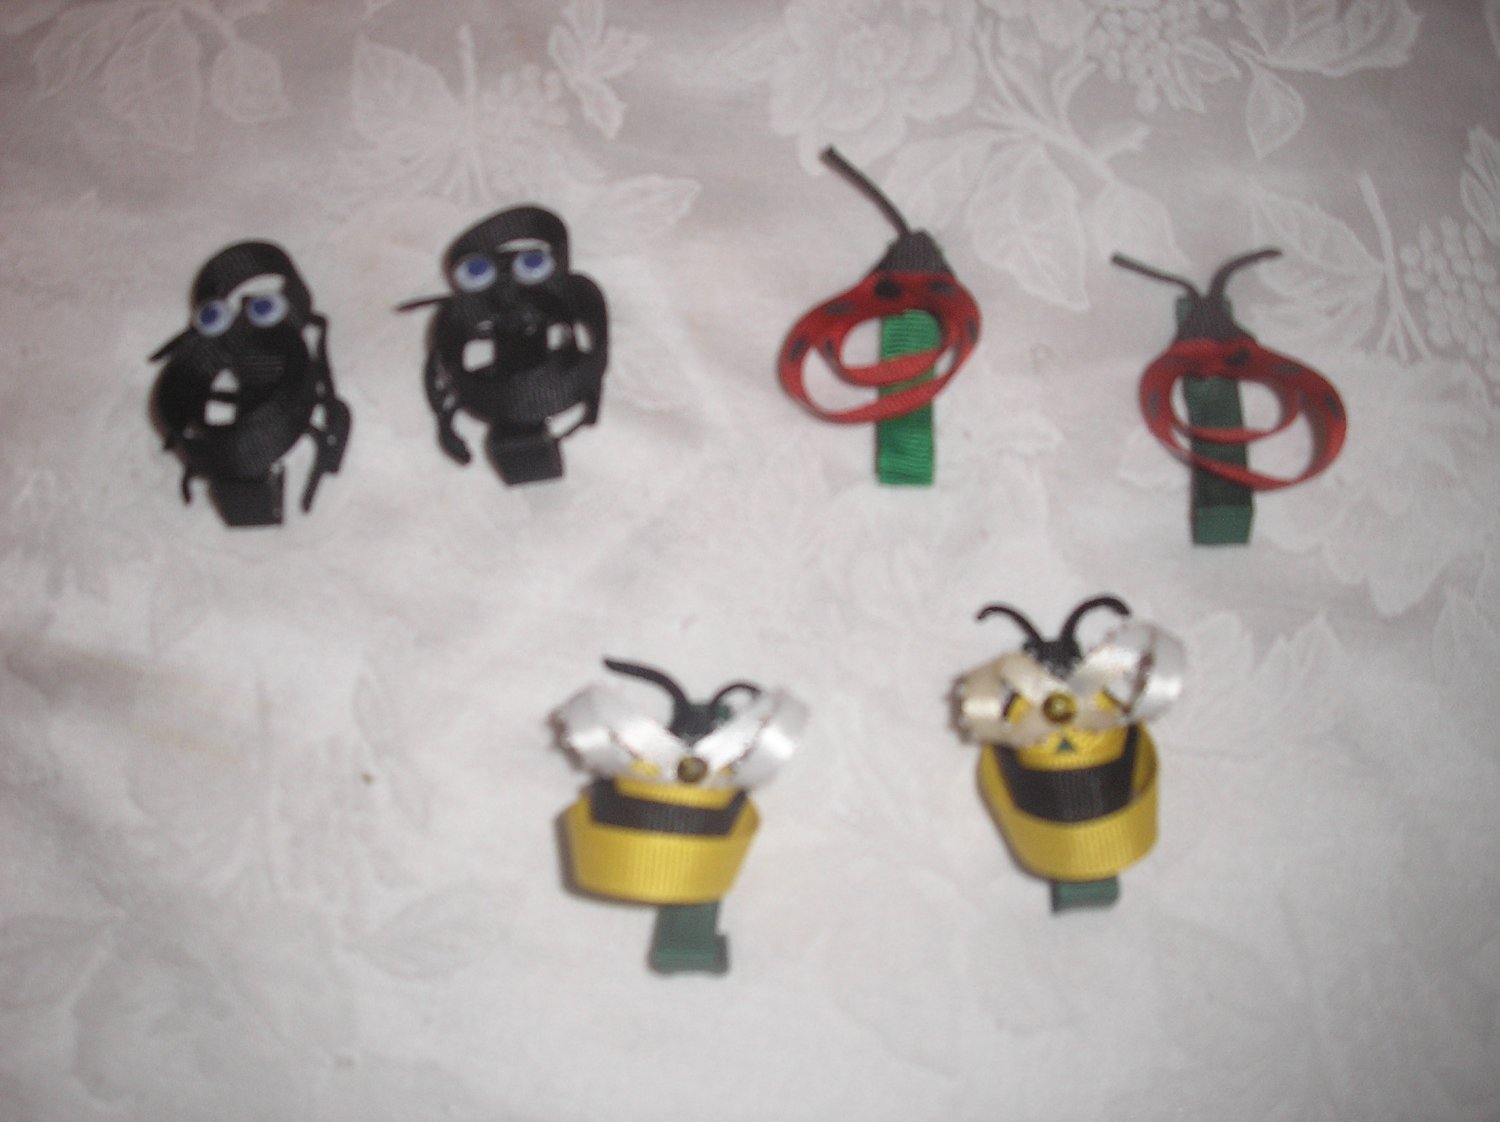 "LOT OF 6 LIL BUG BOW 2"" CLIPPIES 3 SETS LADYBUGS BEES SPIDERS BOUTIQUE HANDMADE"